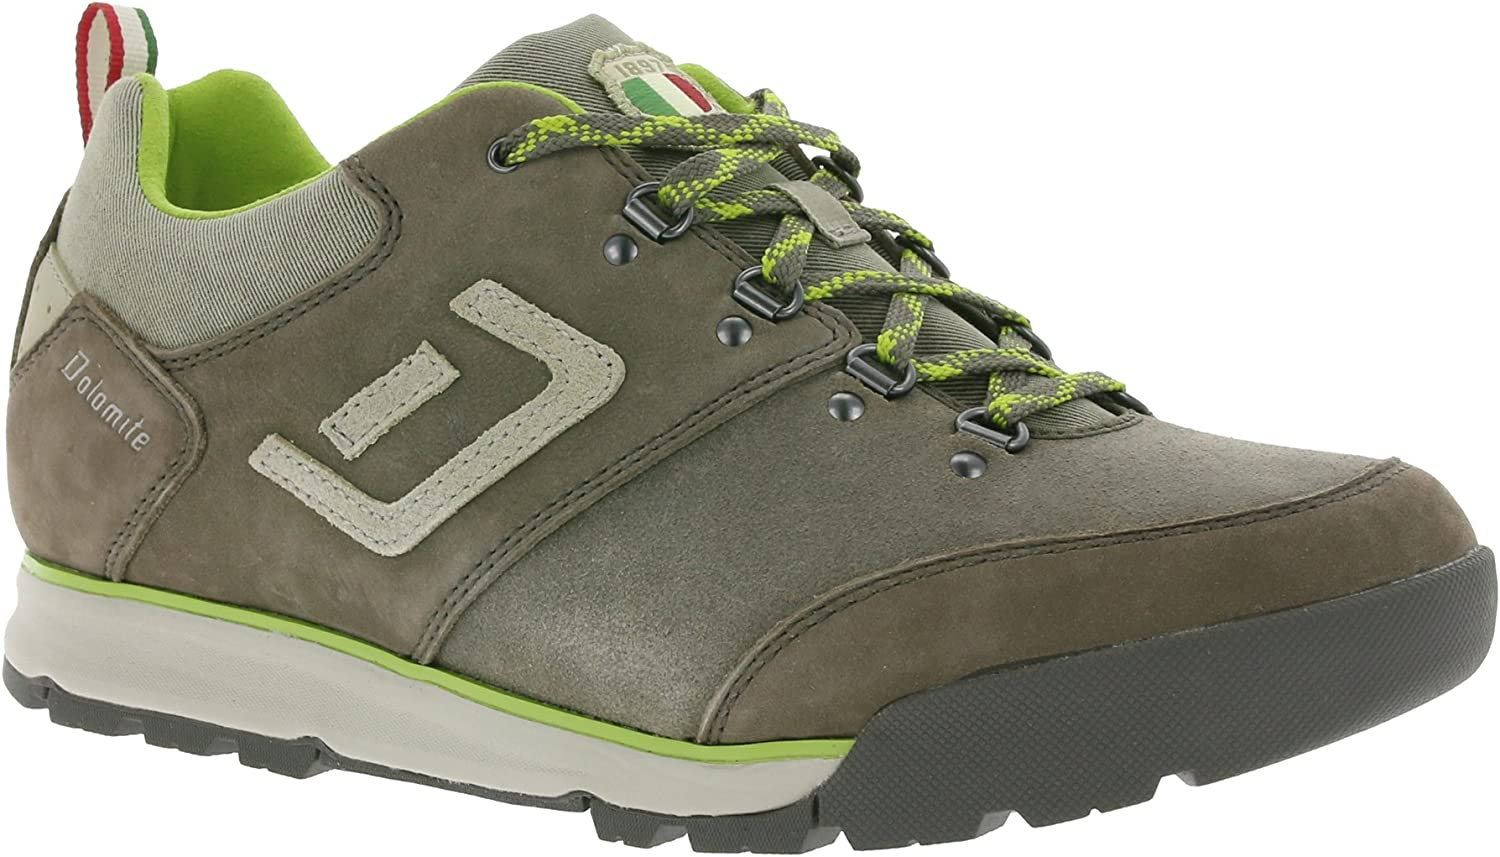 Dolomite Ottantacinque 85 Low shoes